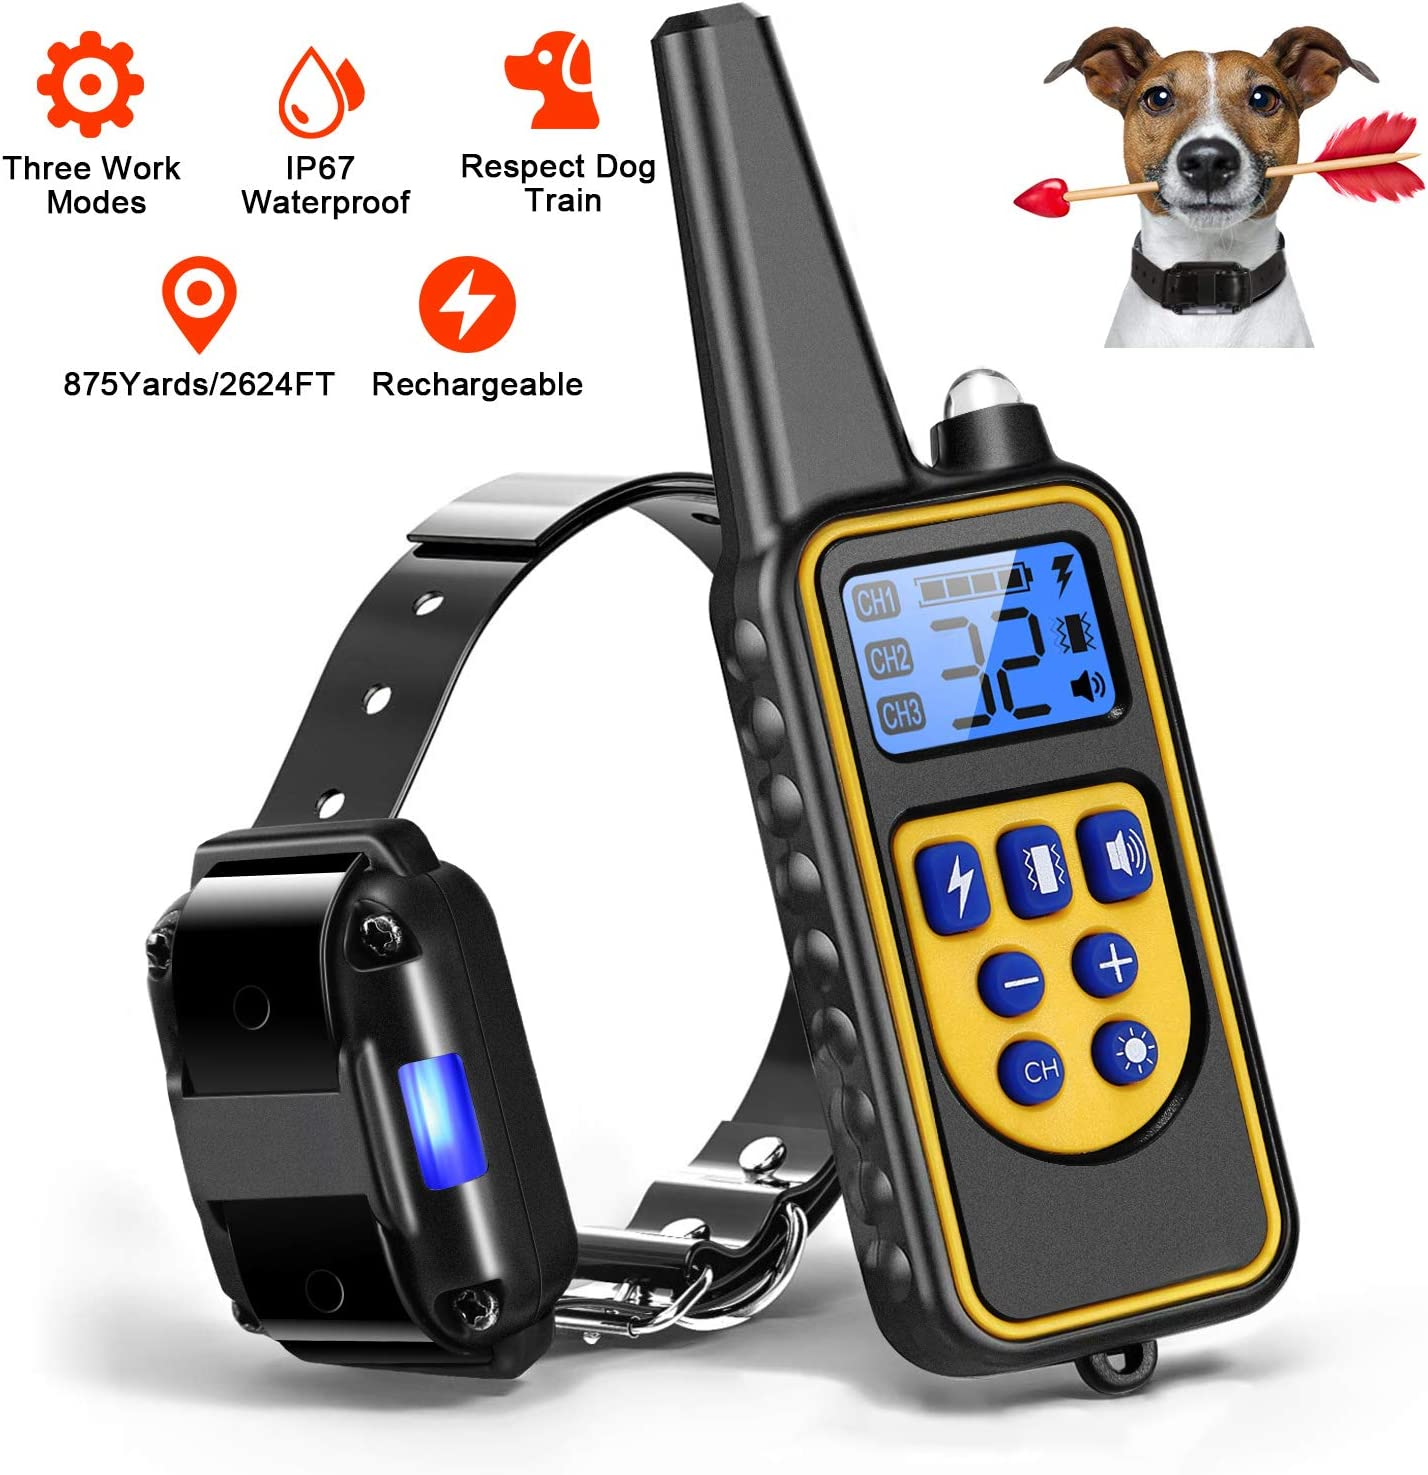 Moclever Dog Training Collars, Upgraded Dog Shock Collar with Remote 2624FT, Pet Trainer Collars for Dog IP67 Waterproof, Rechargeable w Beep, 99 Levels Vibration Shock Modes for Small, Medium, Large